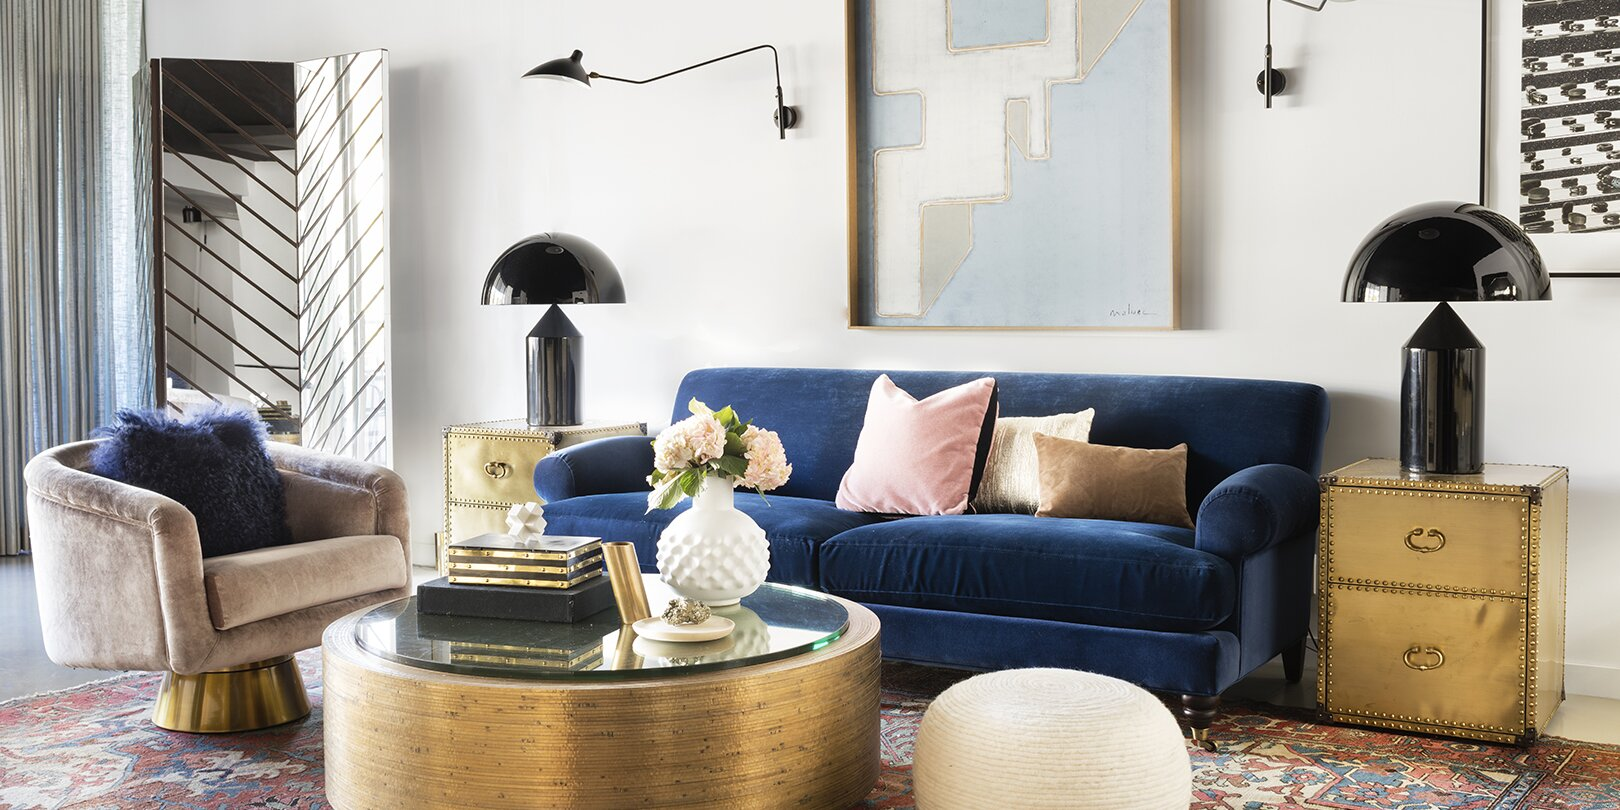 What Colors Go With Gold How To Create A Palette With The Warm Metallic Better Homes Gardens